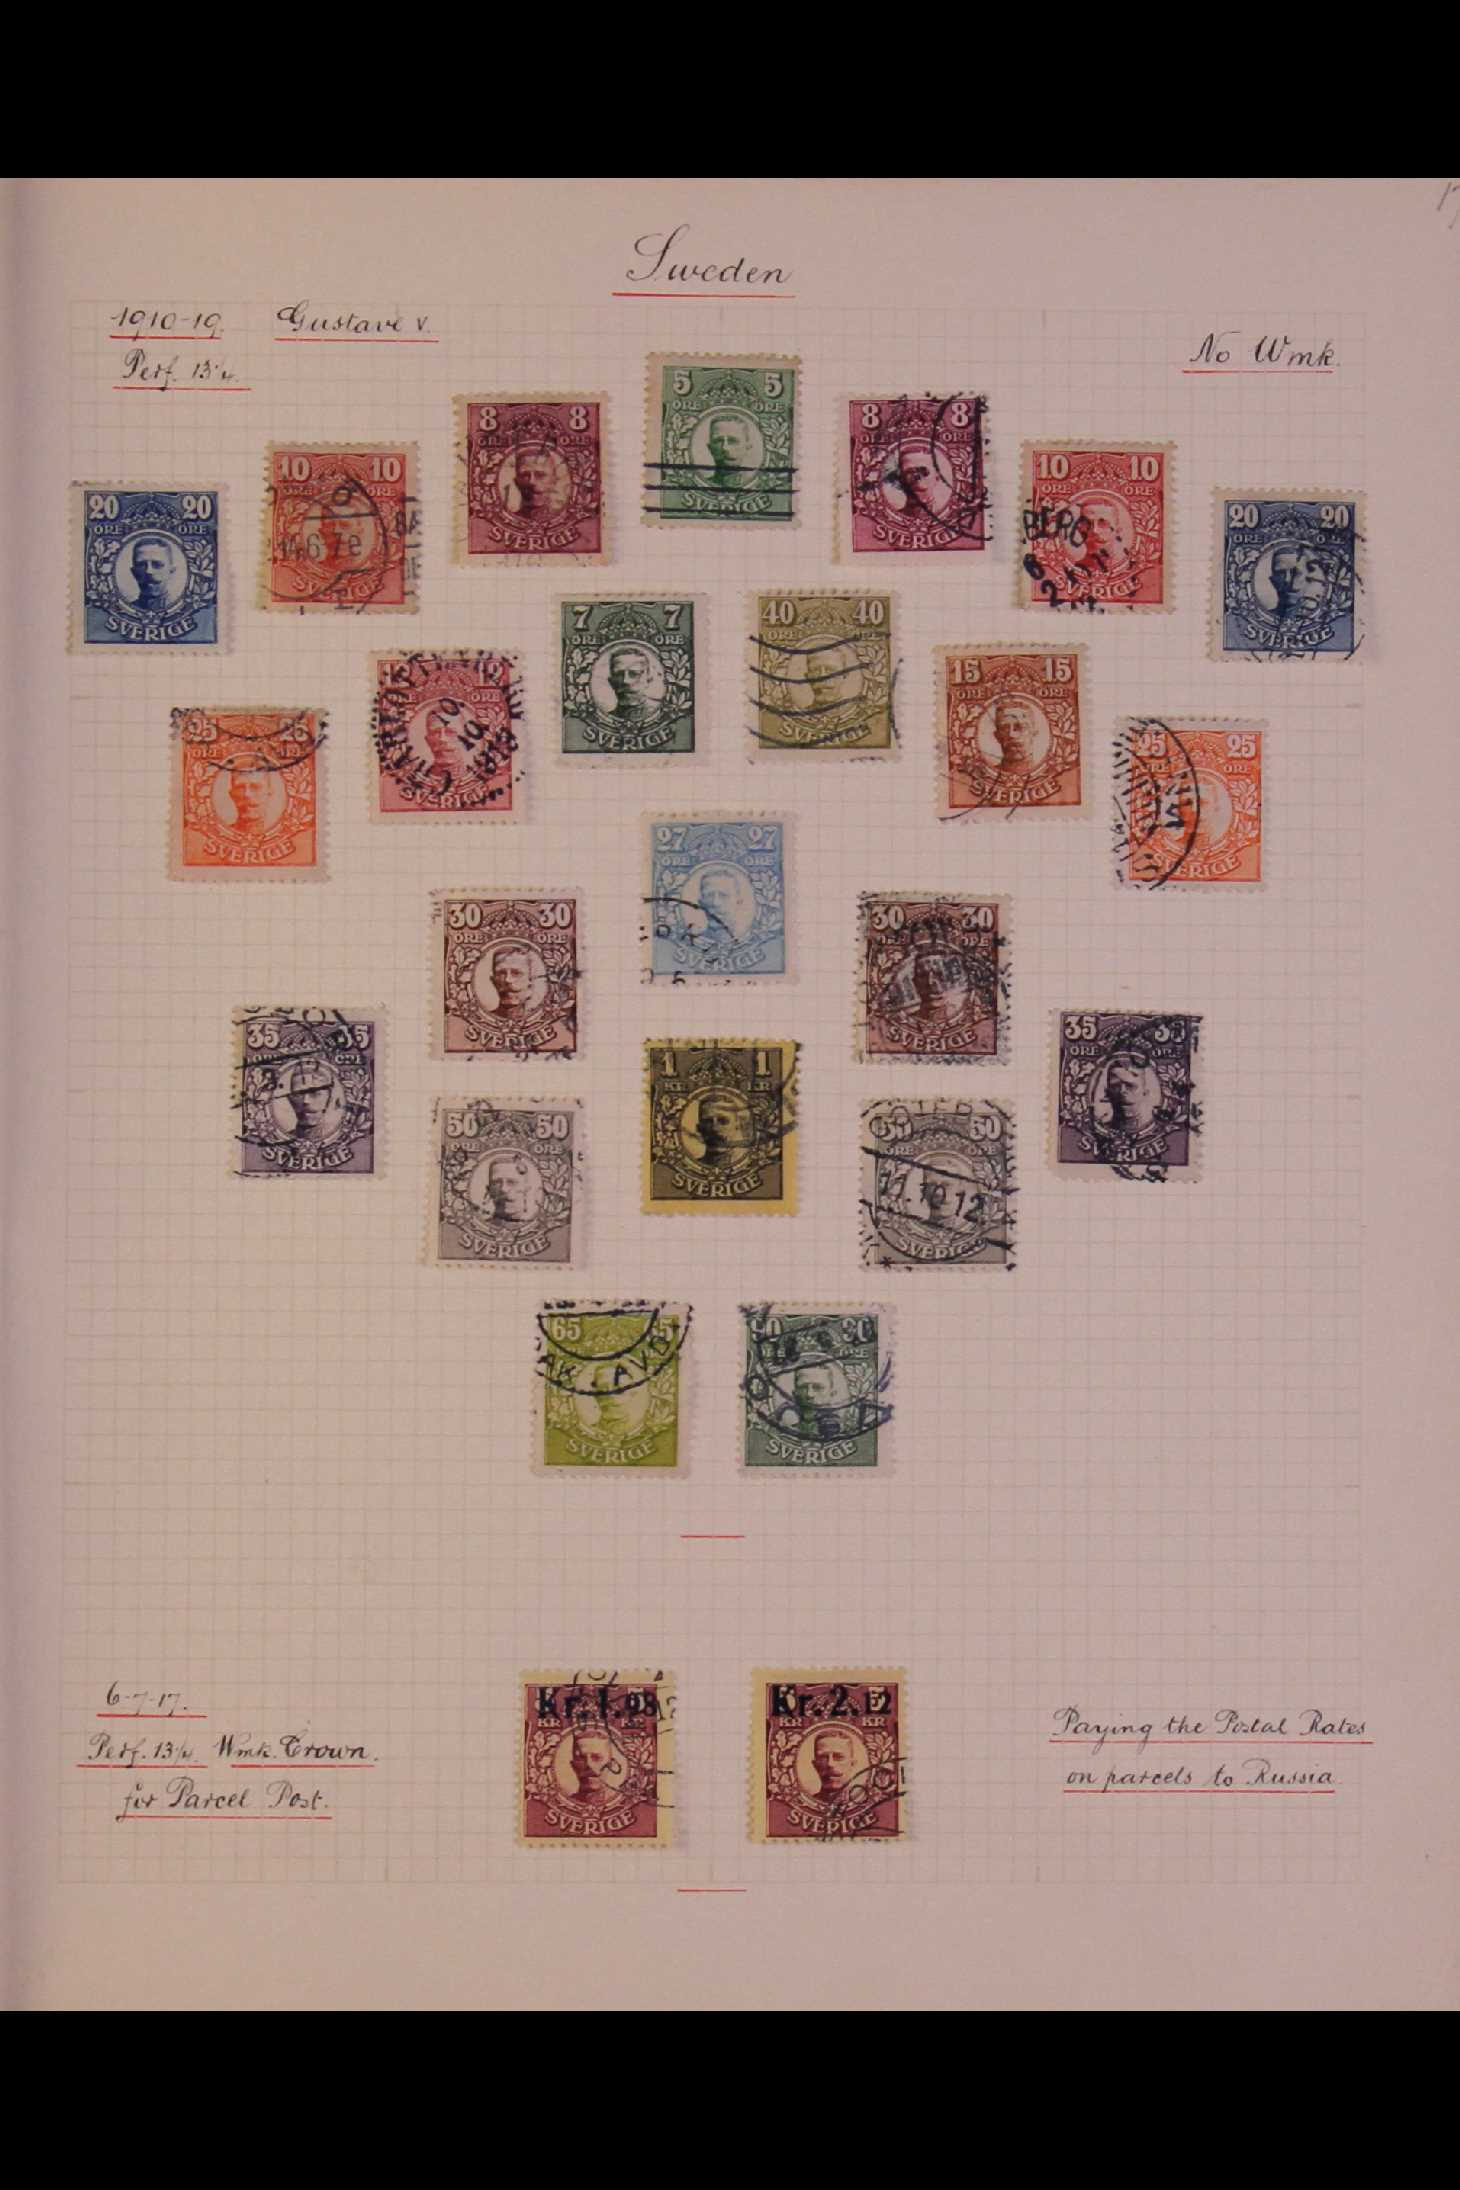 SWEDEN 1903-1966 USED COLLECTION incl. 1903 5k GPO, 1910-19 wmk Crown set, 1916 Landstorm surcharges - Image 2 of 12